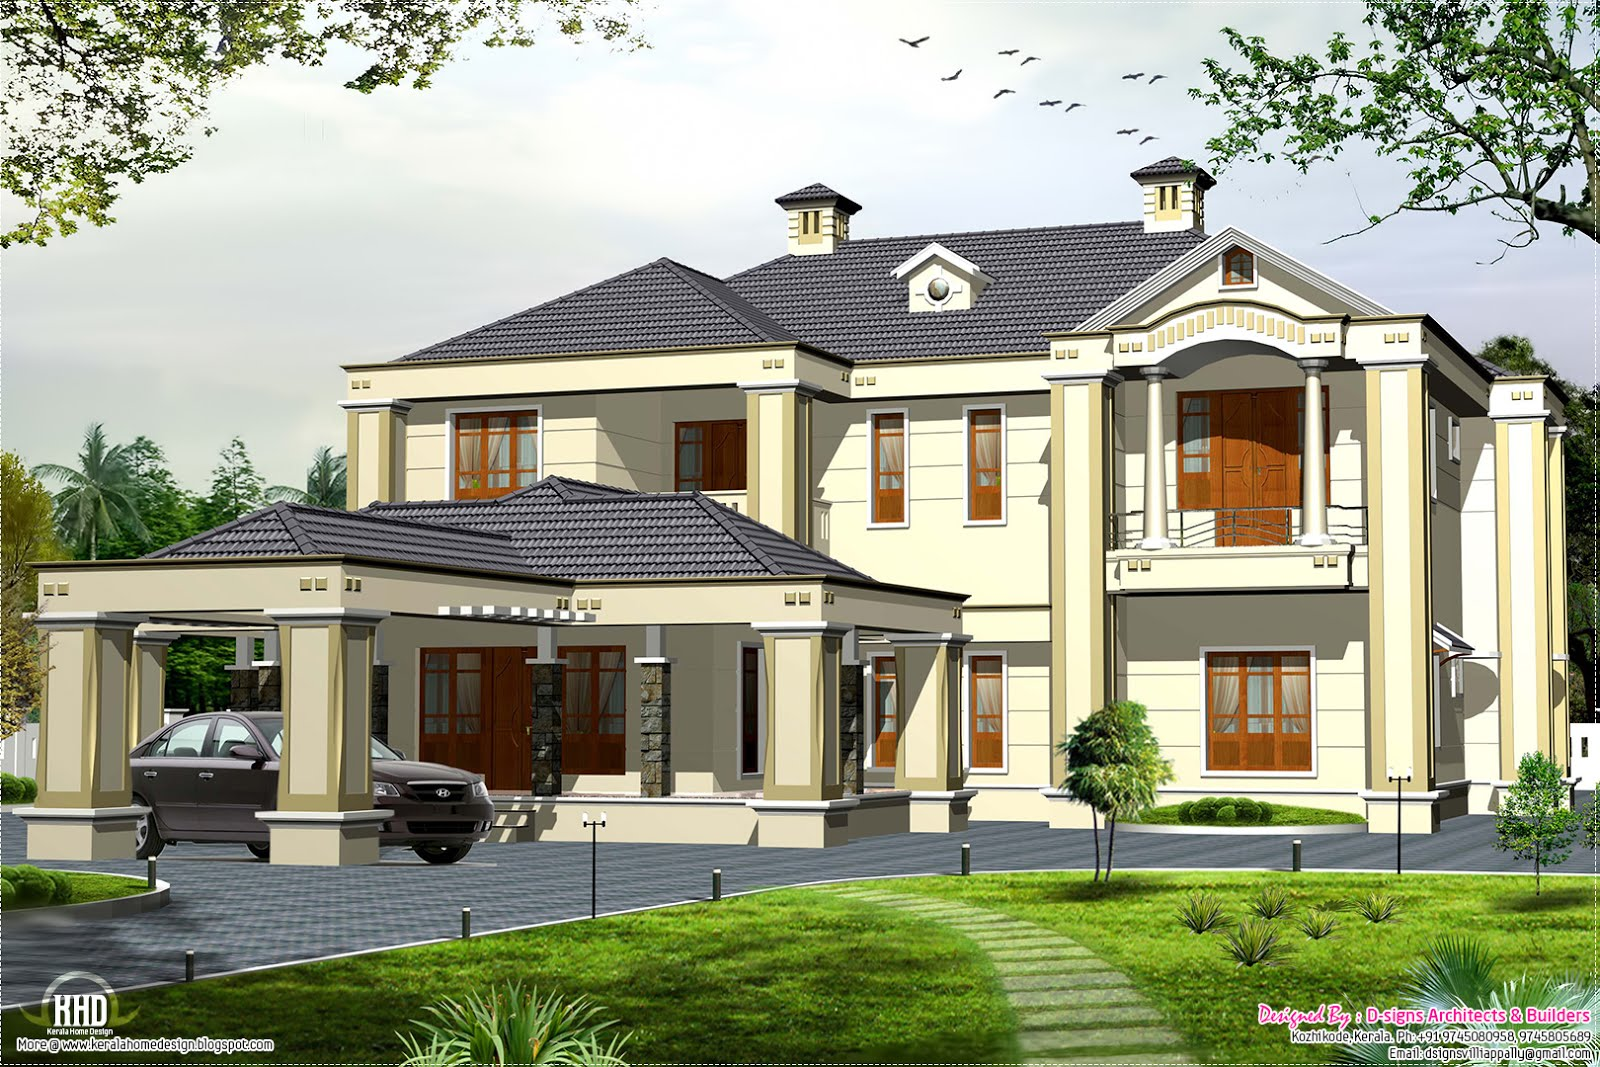 Colonial style house design victorian house designs pictures of colonial houses - Victorian design style style ...